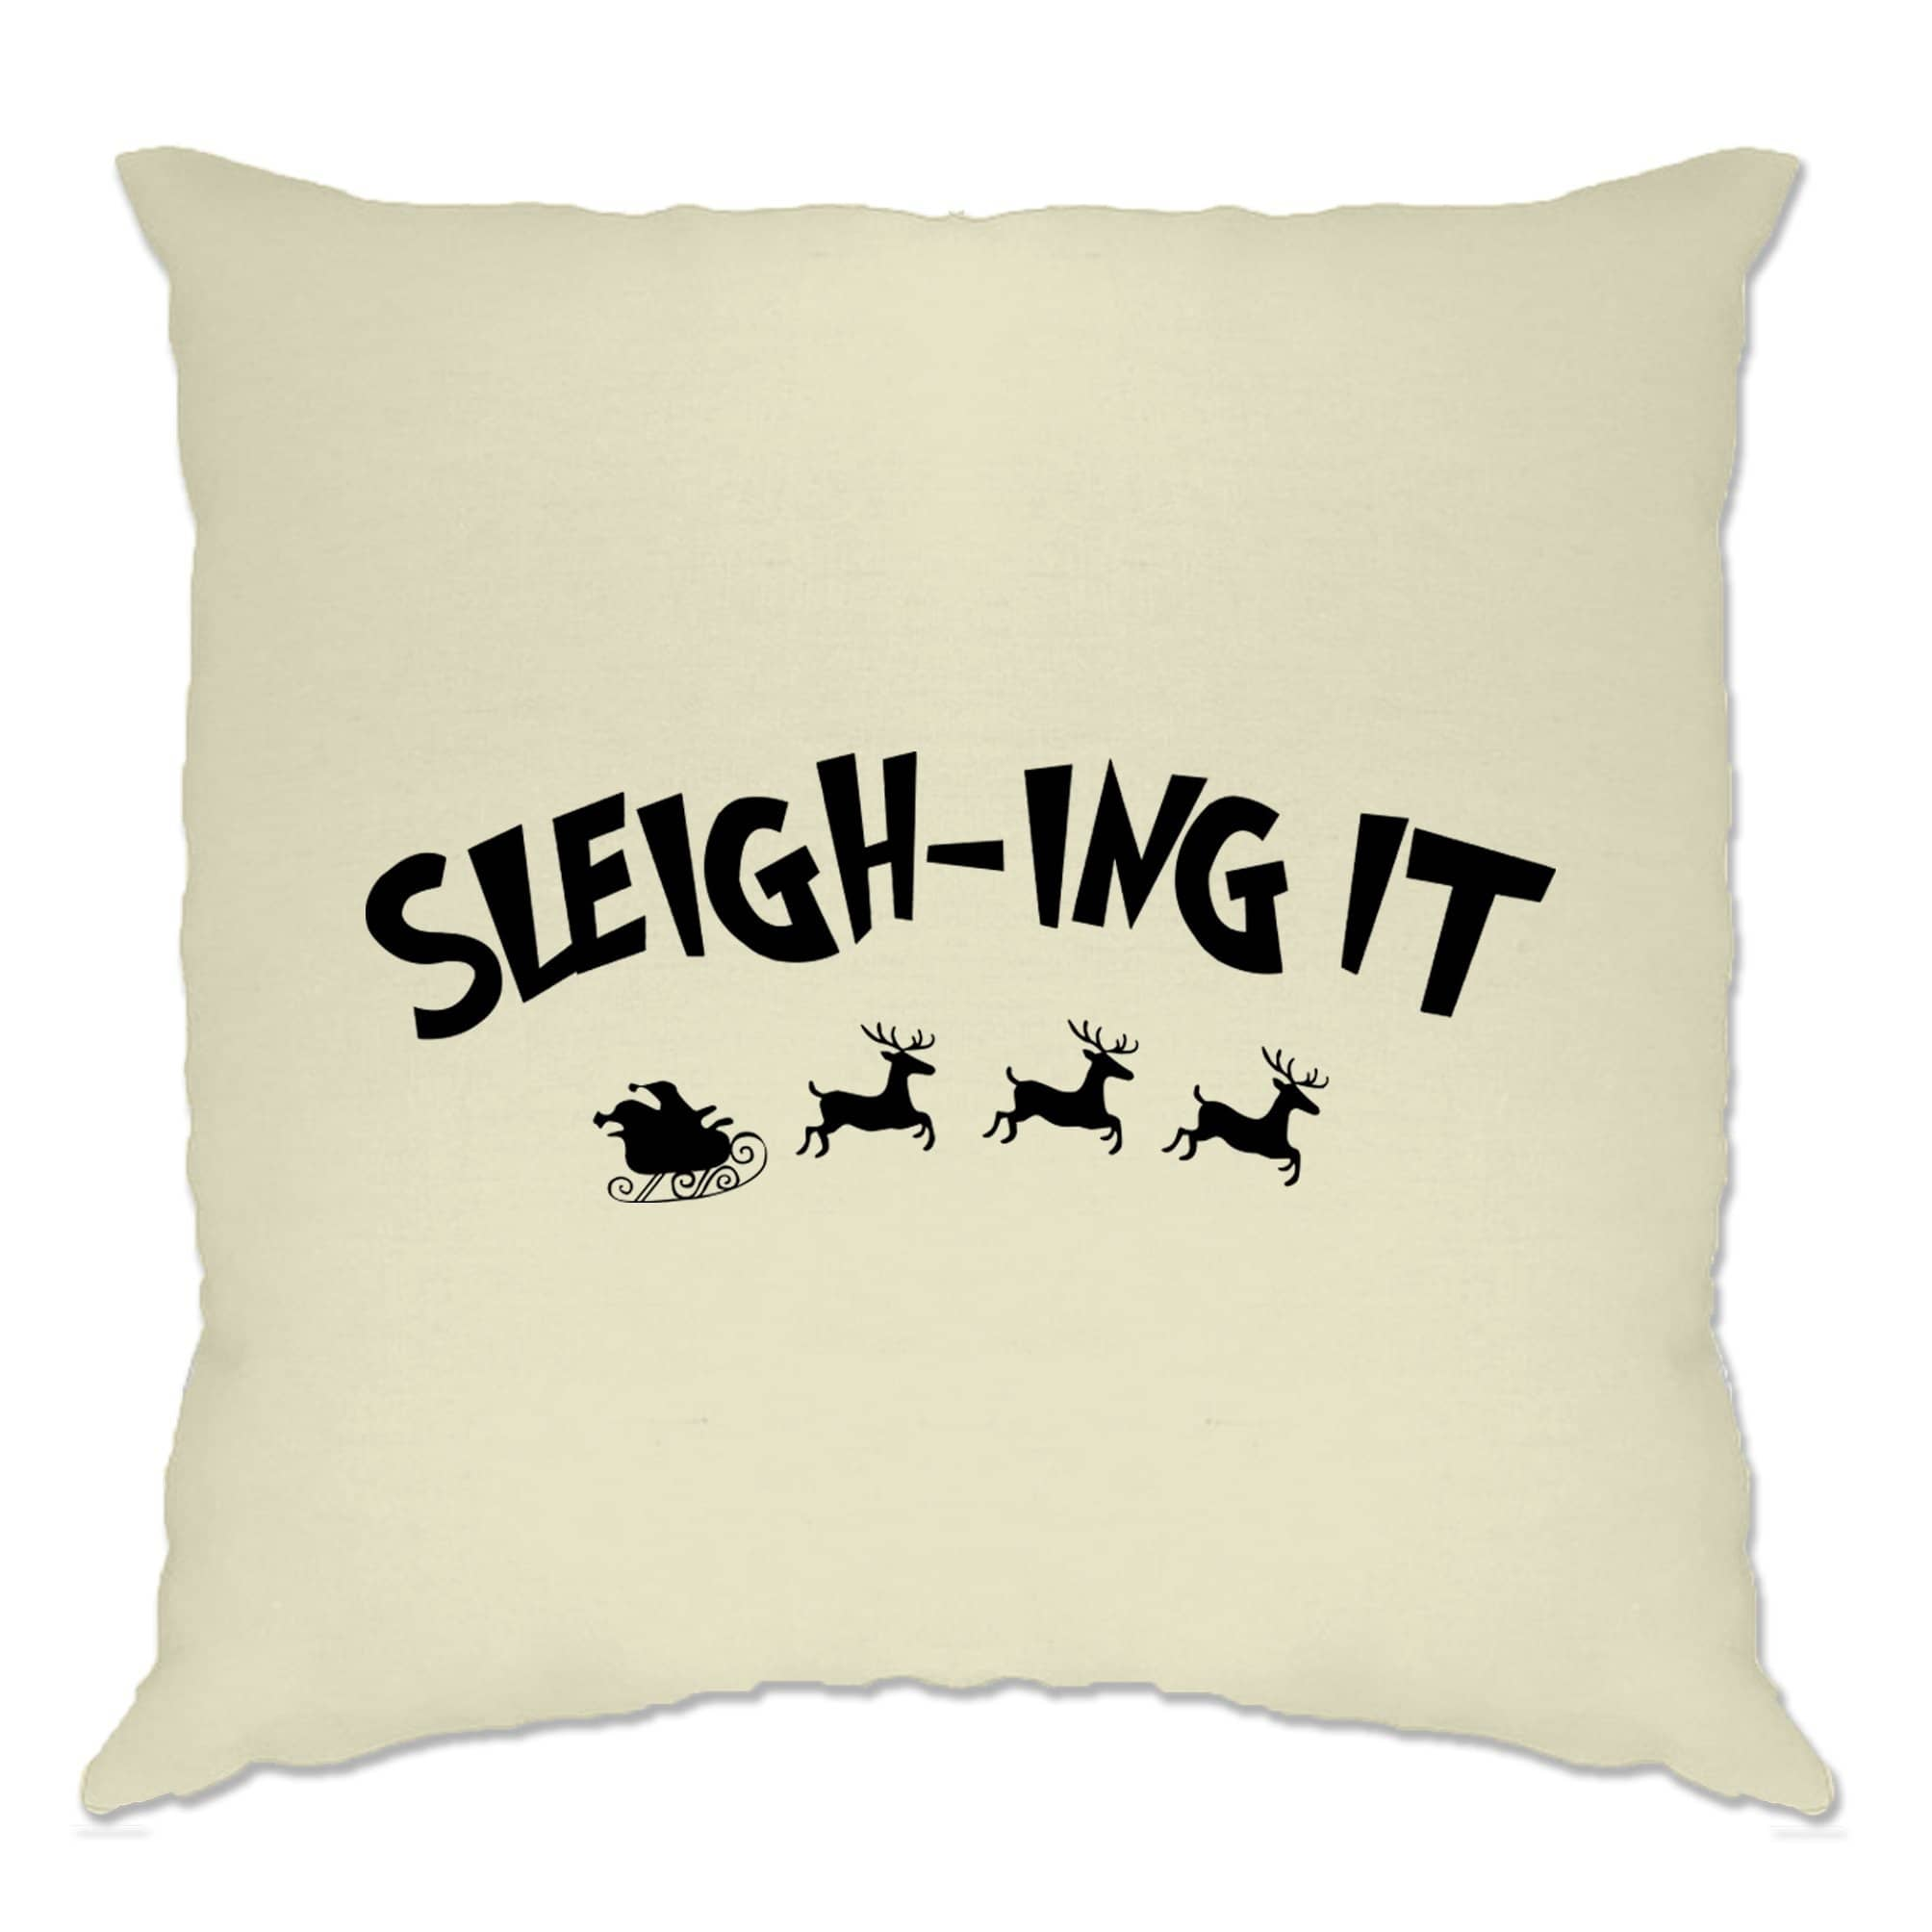 Joke Christmas Cushion Cover Sleigh-ing Slaying It Pun